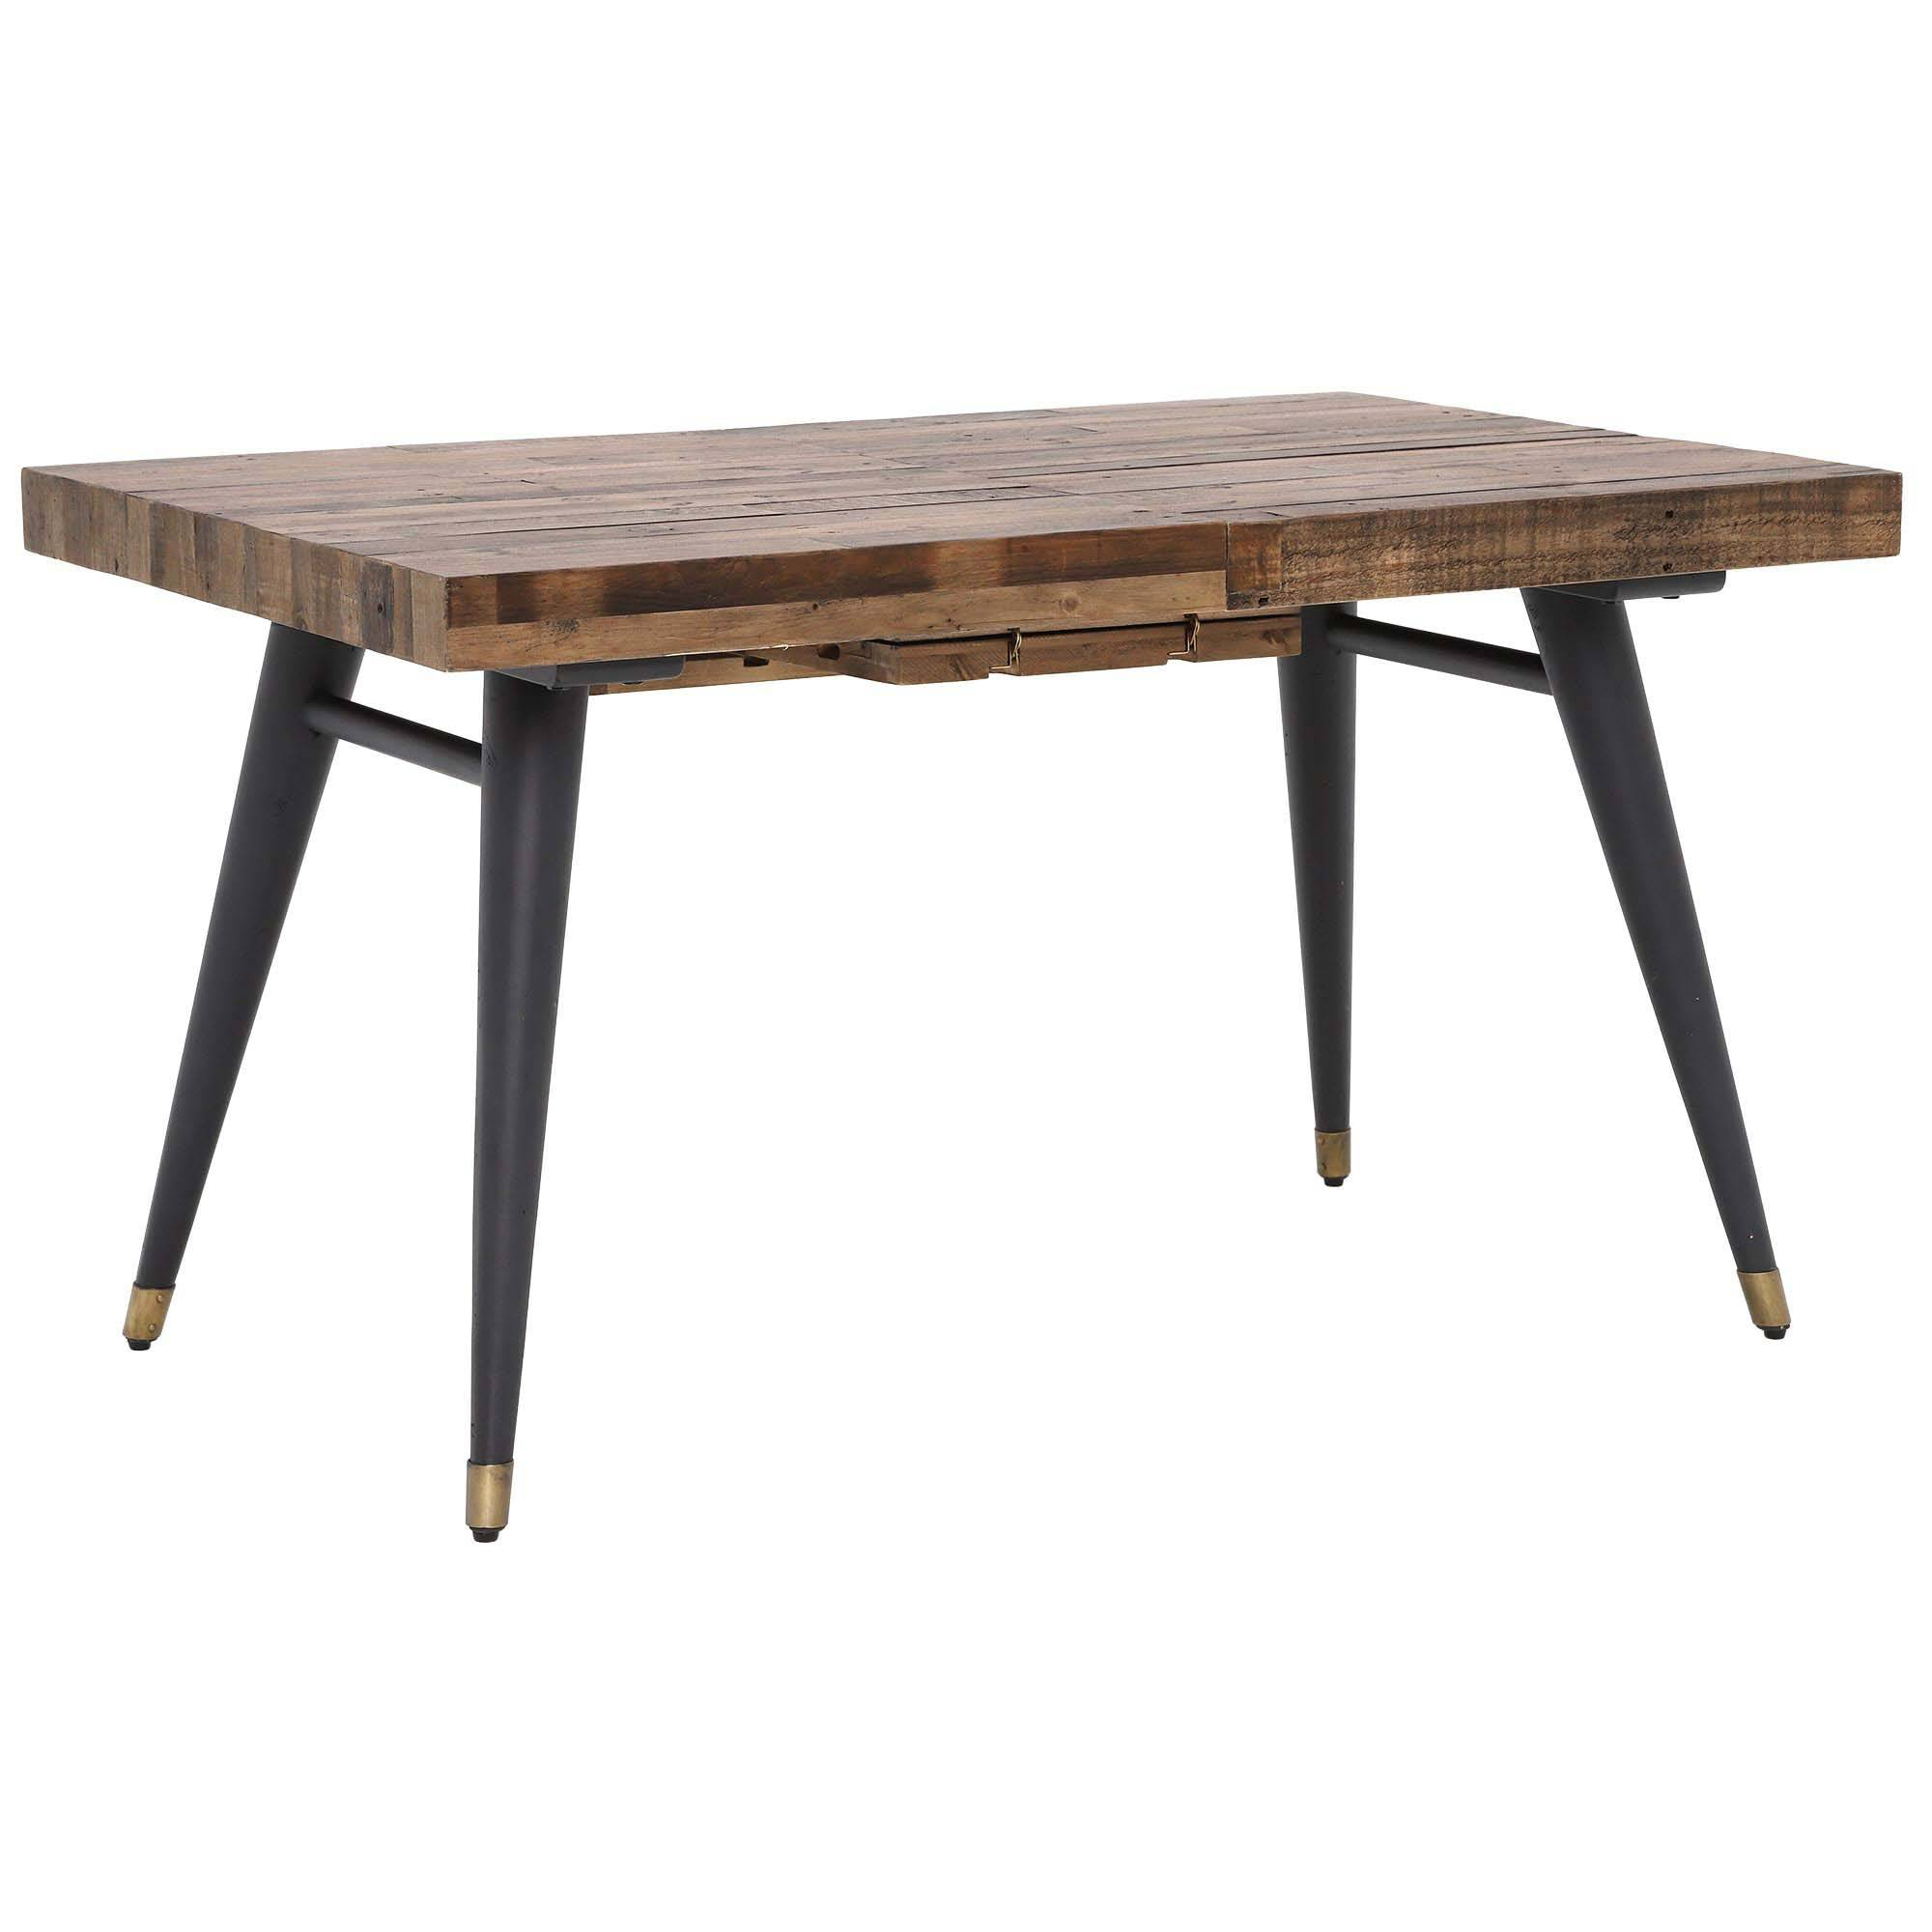 Furniture Dining Room Reclaimed Extending Table Wood For Latest Hart Reclaimed Extending Dining Tables (Image 10 of 25)